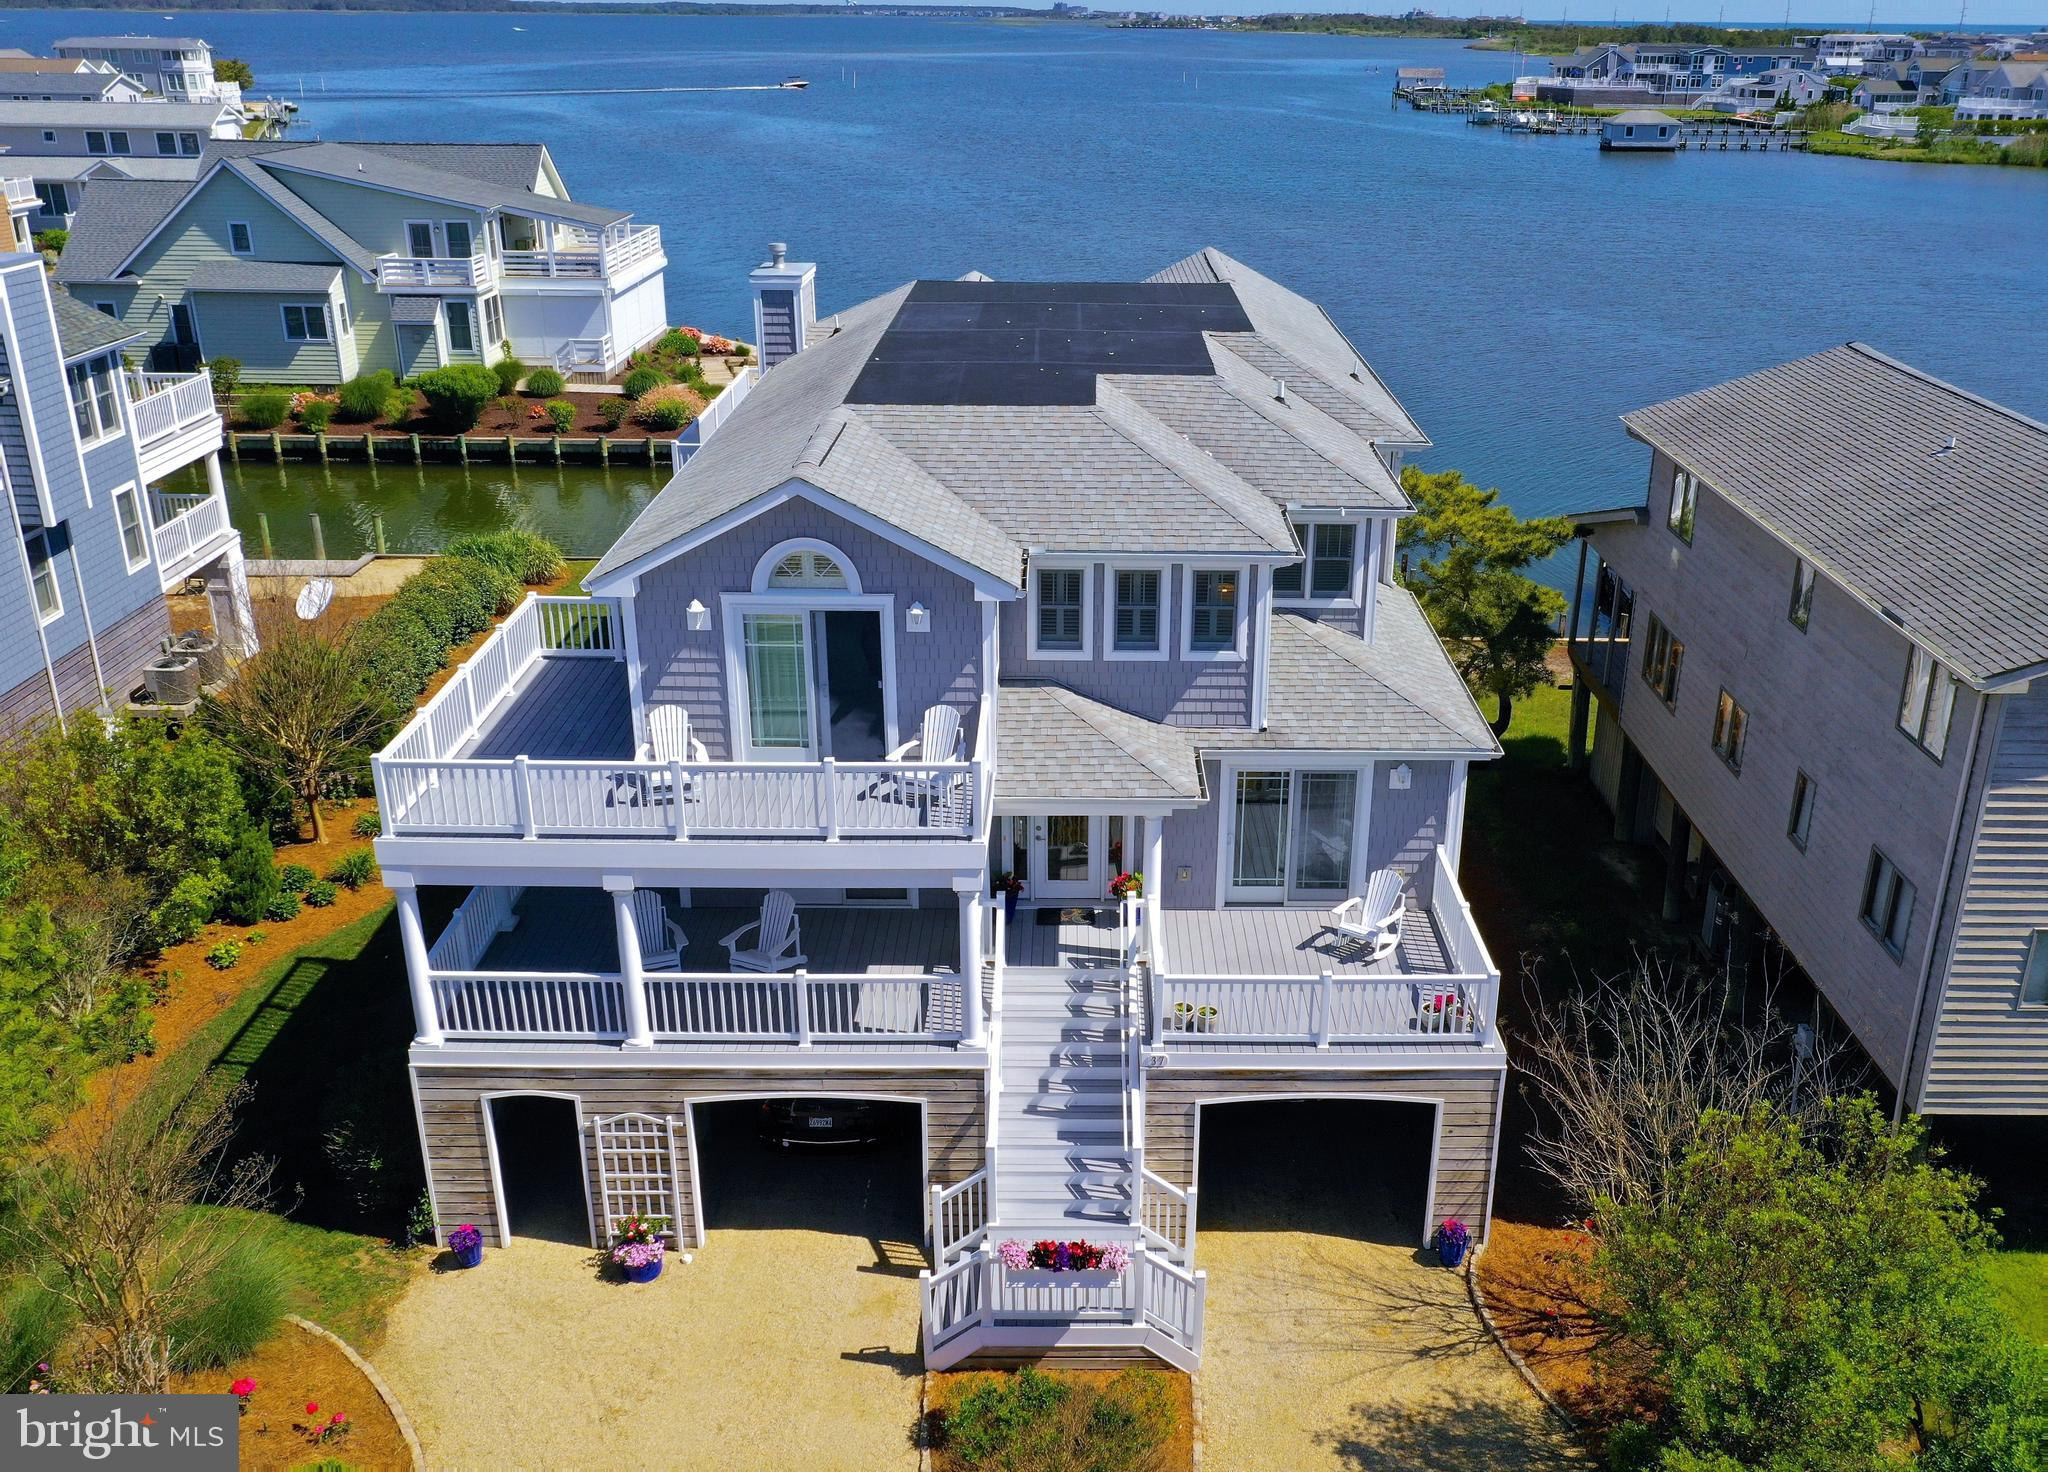 Stunning Bayfront home just a short walk to the beach with incredible panoramic water views. This co